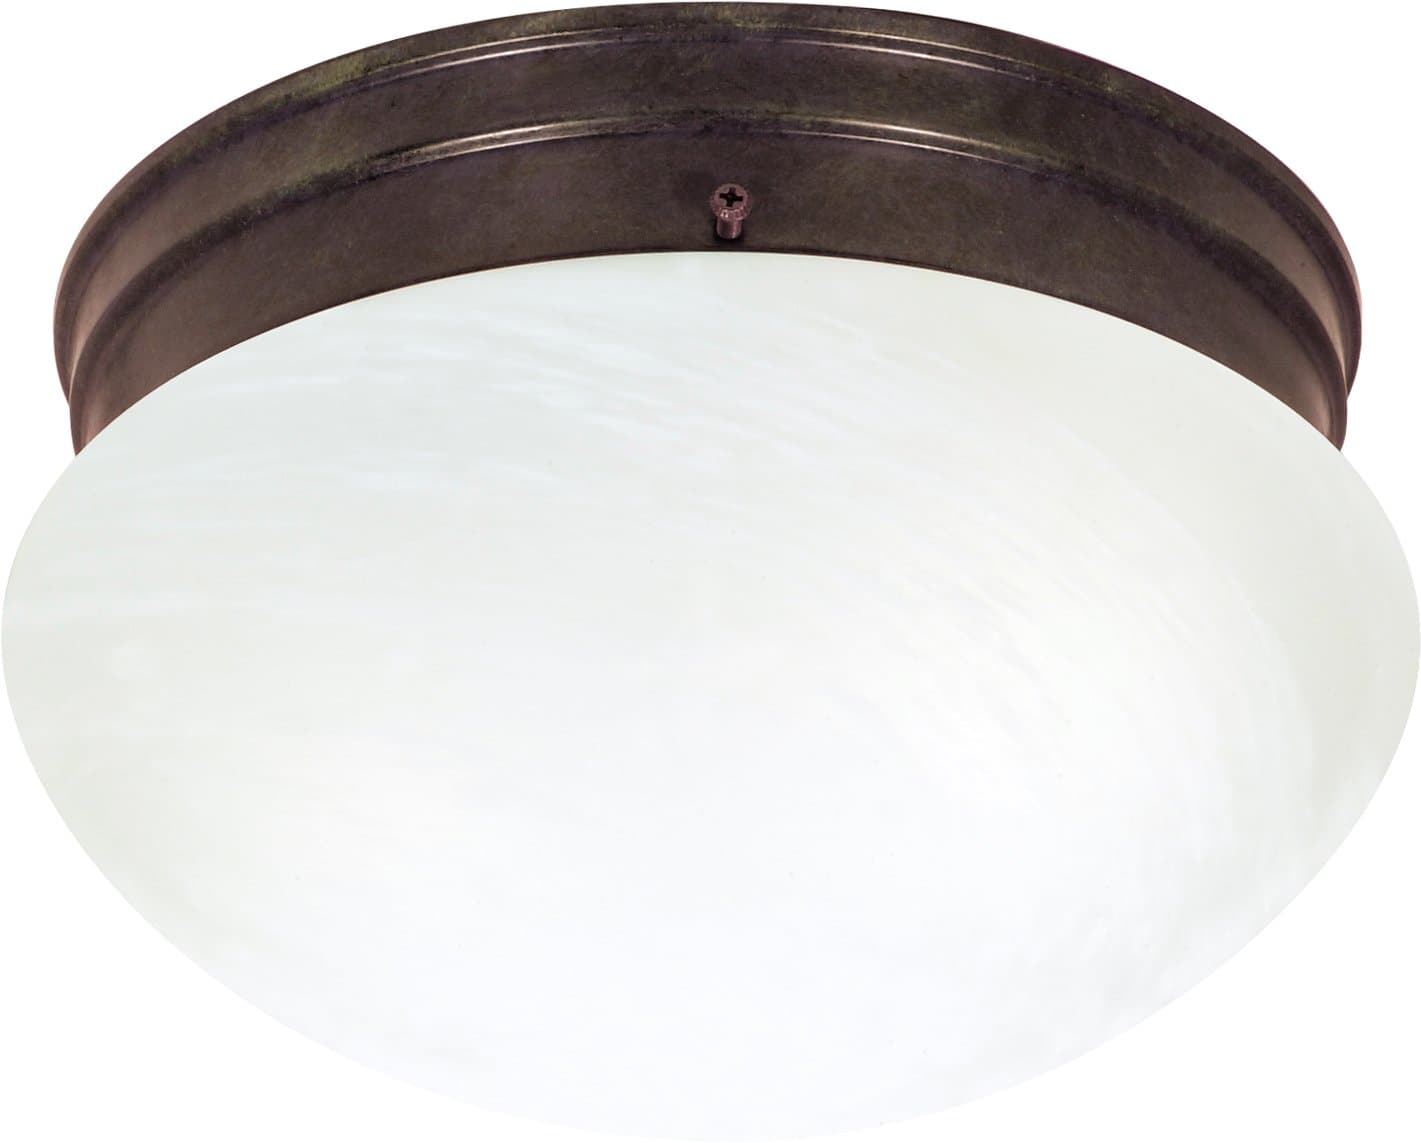 2-Lights 10 Inch Flush Mounted Close-to-Ceiling Light Fixture Old Bronze Finish